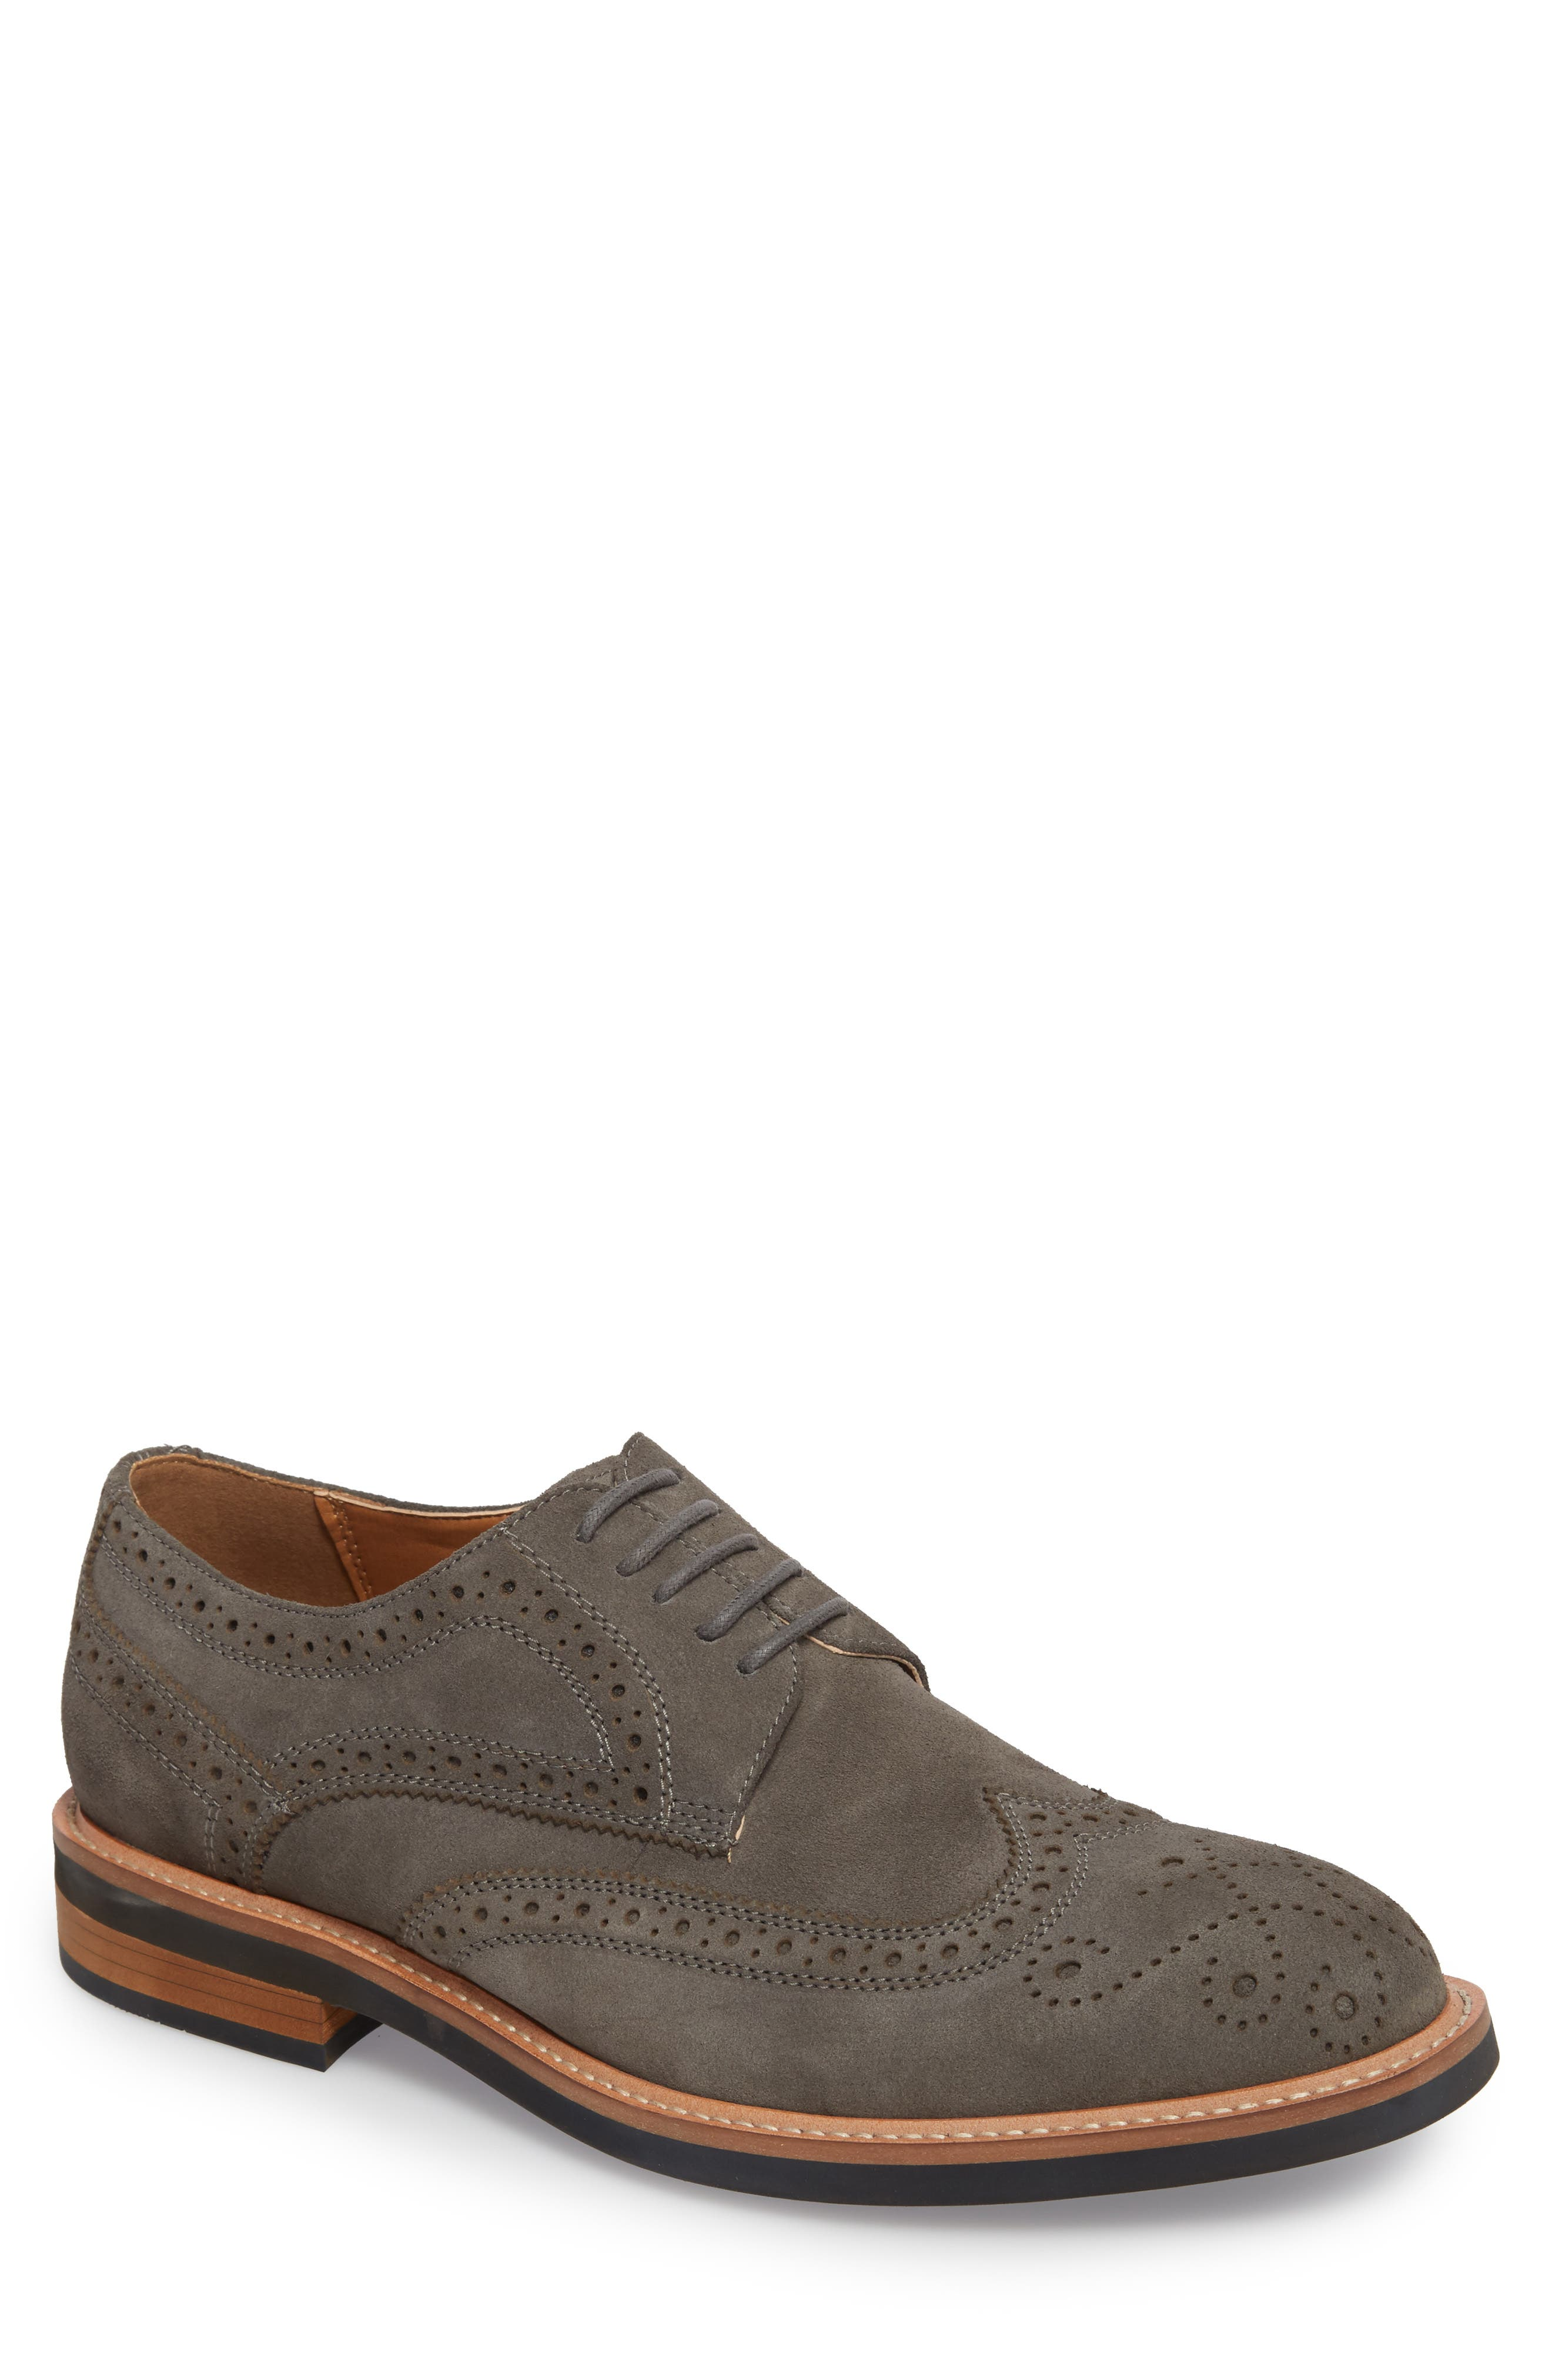 Kenneth Cole Reaction Wingtip,                             Main thumbnail 1, color,                             Grey